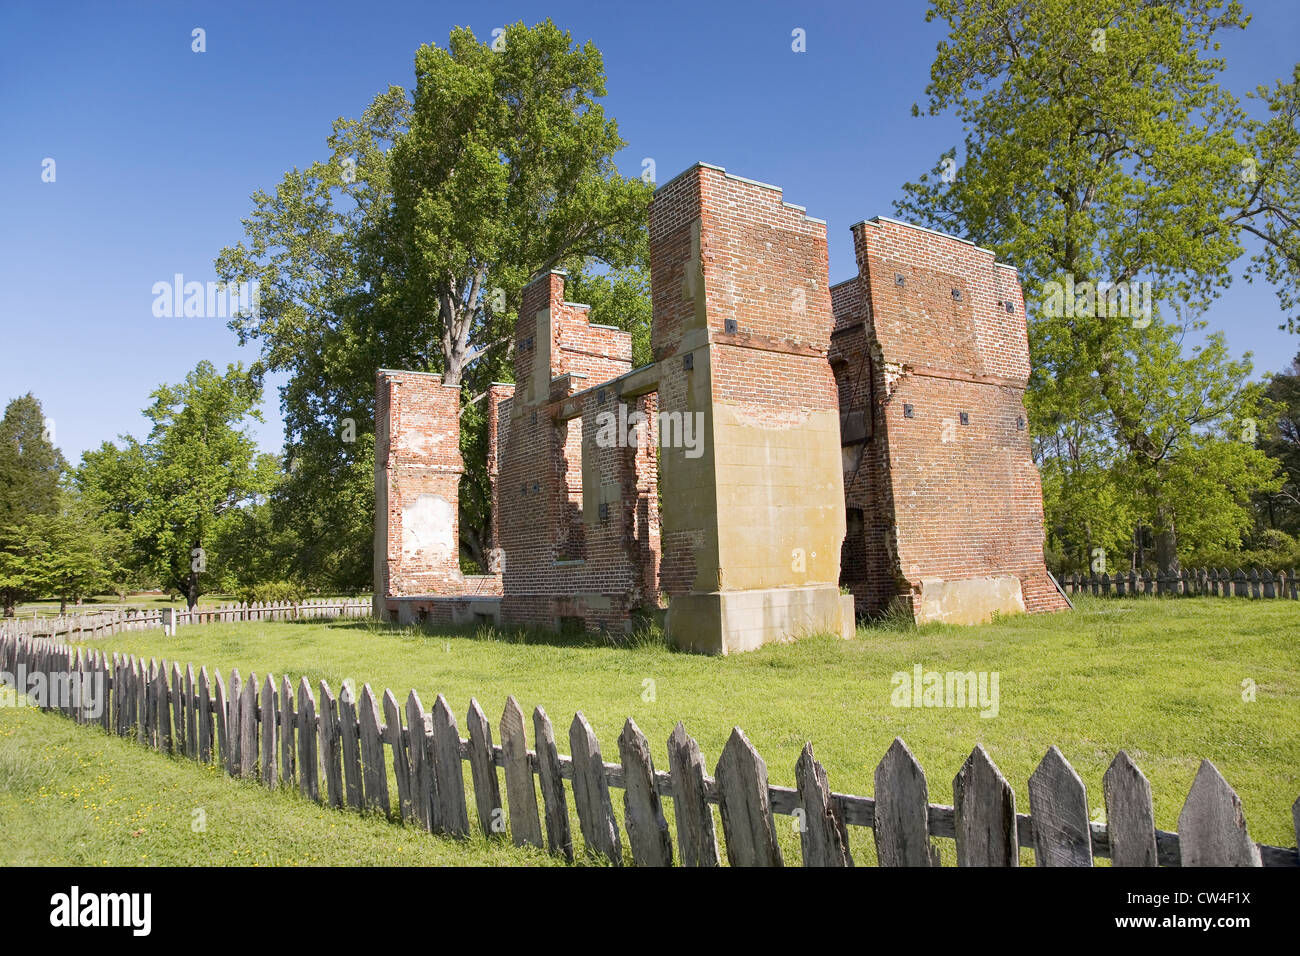 Early house foundations from New Towne site Jamestown Jamestown Island America's Birthplace Virginia built after 1620 very Stock Photo